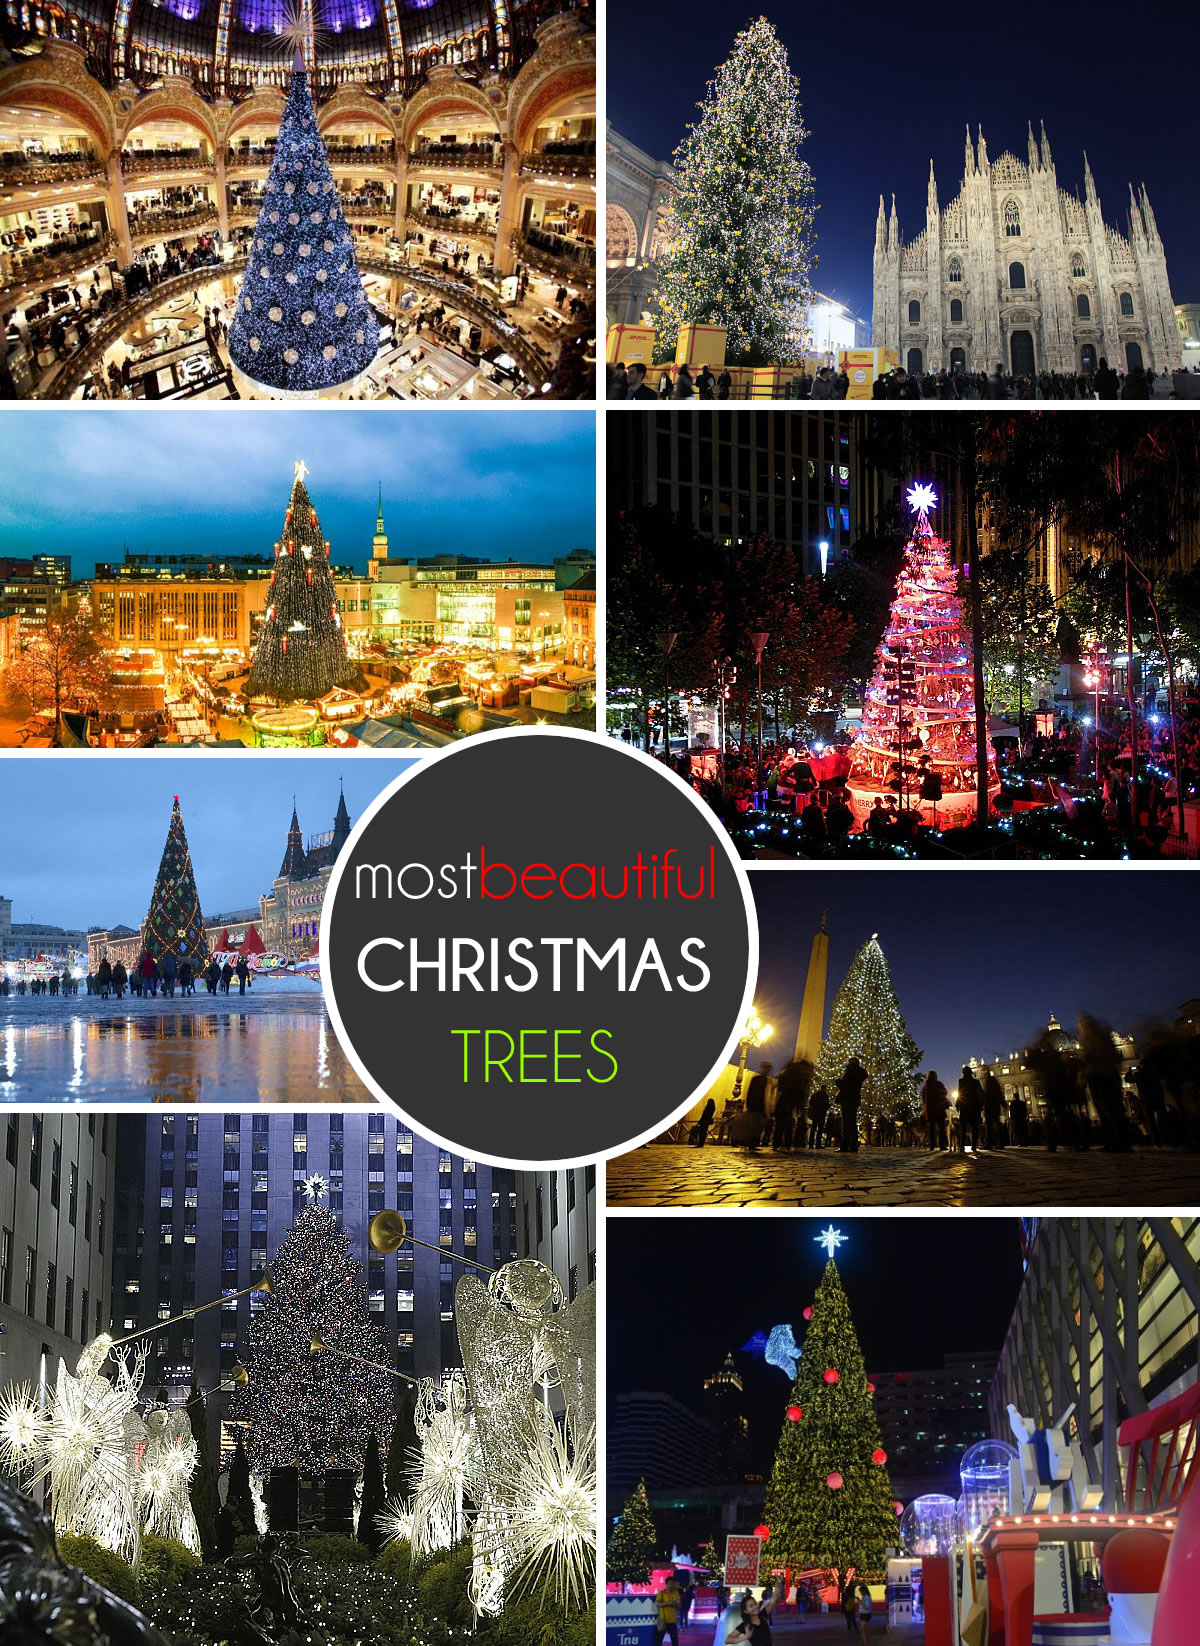 most beautiful christmas trees The 20 Most Beautiful Christmas Trees in the World